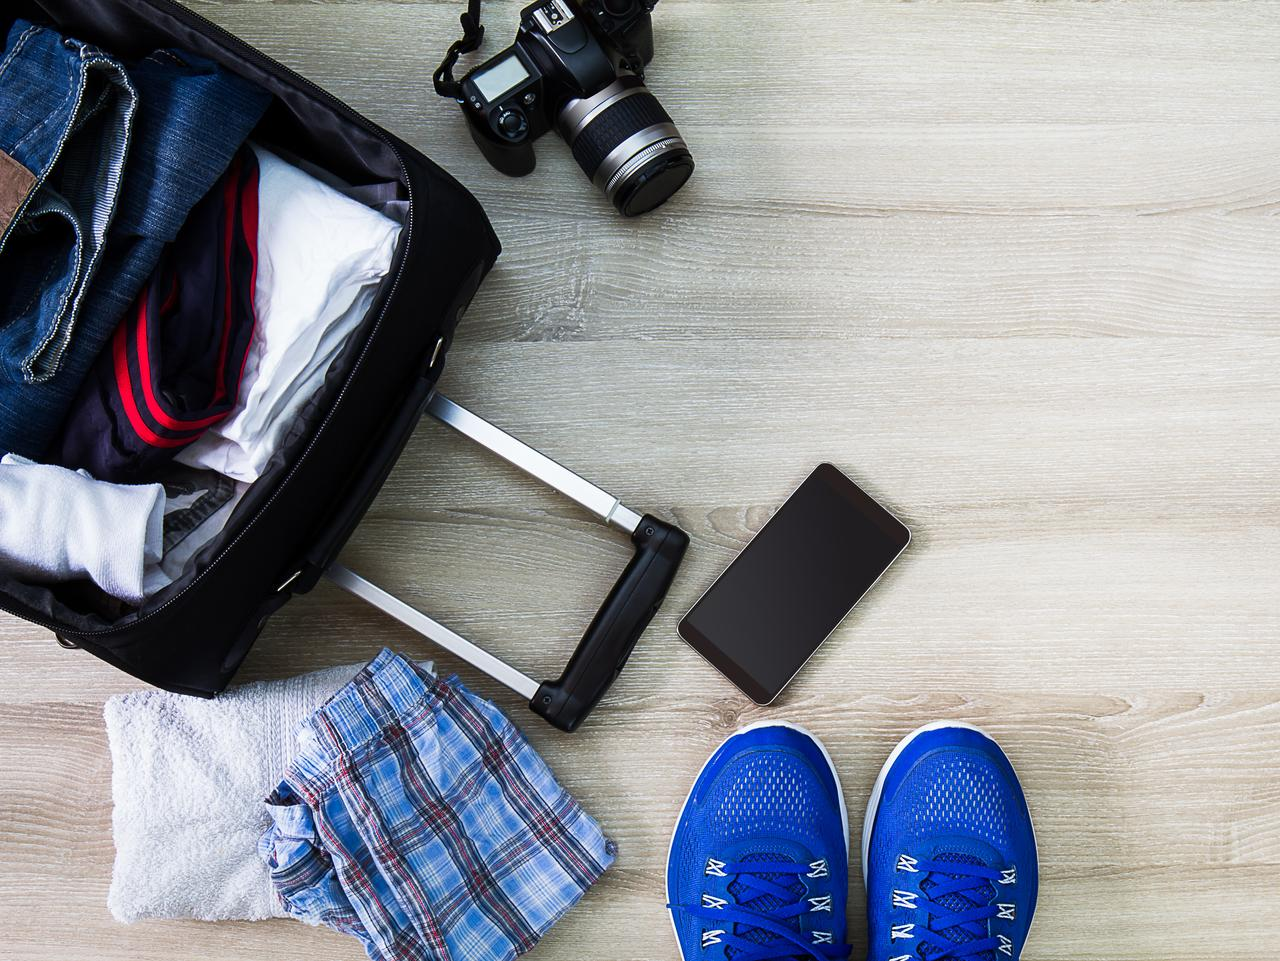 Traveling bag,camera,smartphone and men accessories on wooden background